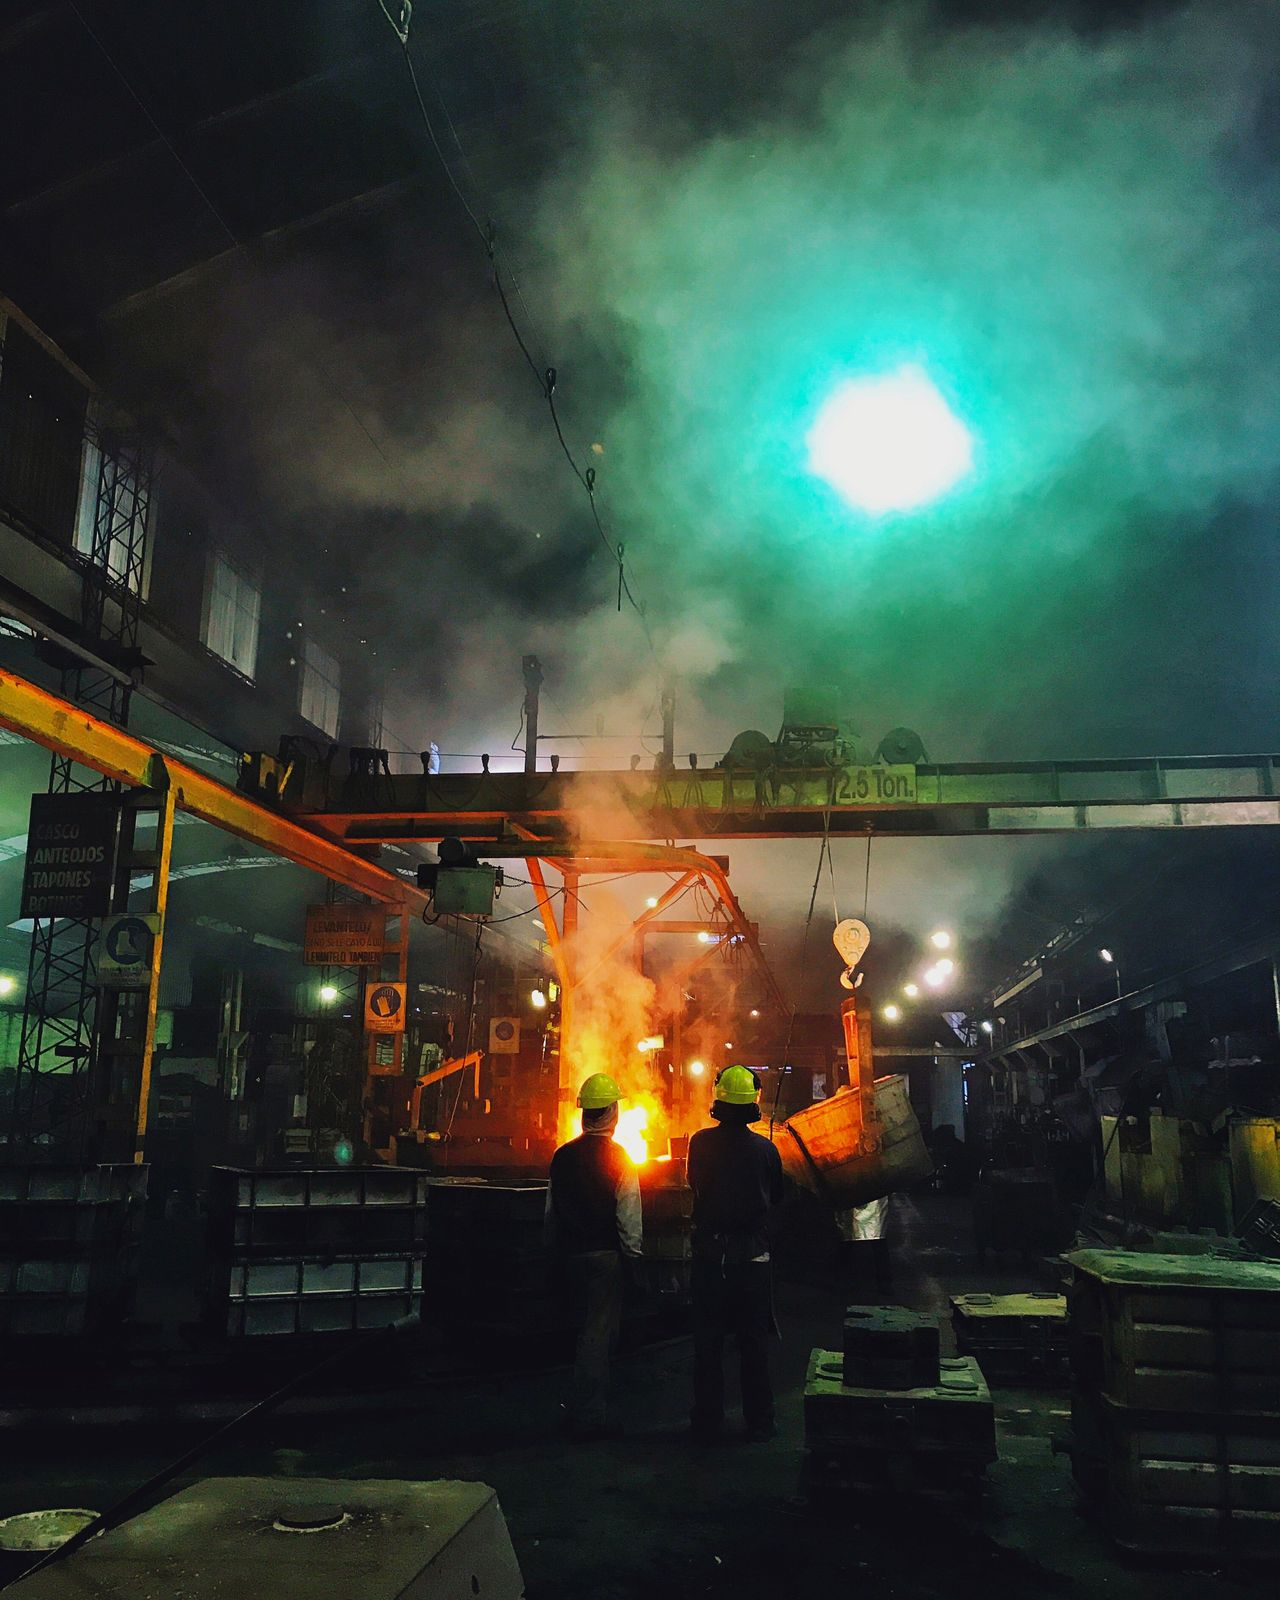 Night Real People Illuminated Smoke - Physical Structure Burning Heat - Temperature Men Occupation Built Structure Protective Workwear Building Exterior Flame Architecture Outdoors One Person City Metal Industry Sky People Factory Factory Photo